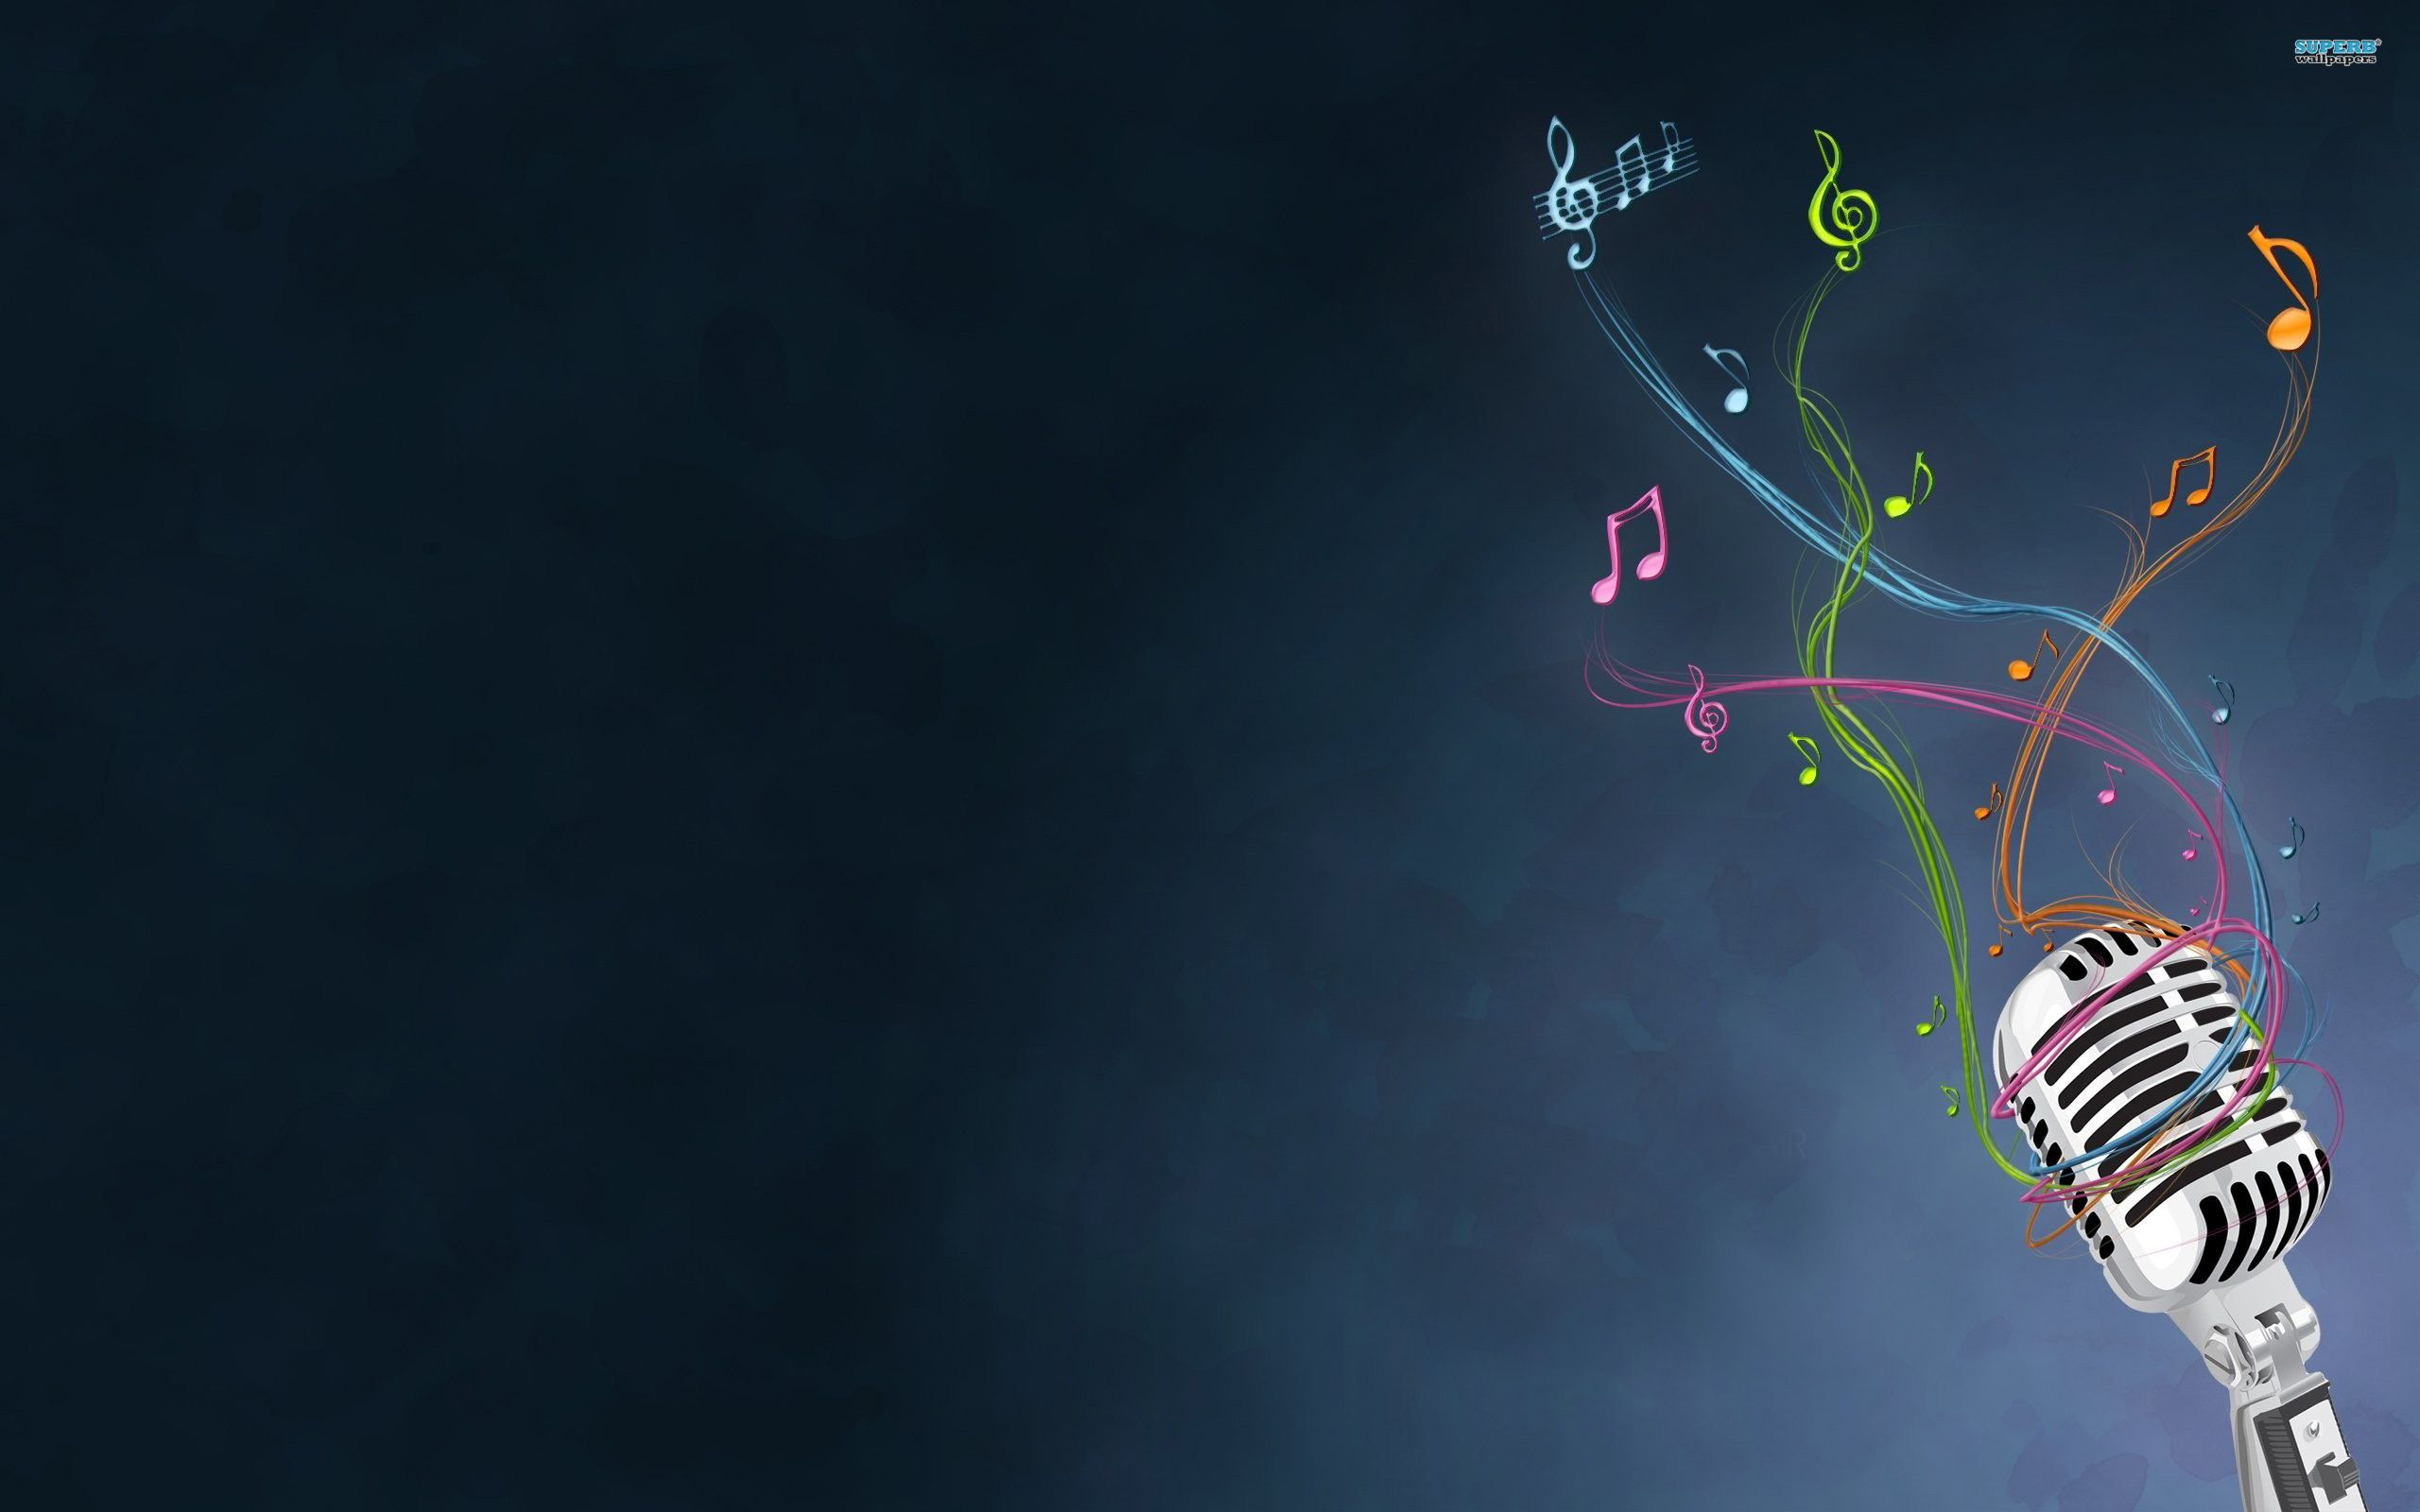 Music Background Images: Full HD Wallpaper Search